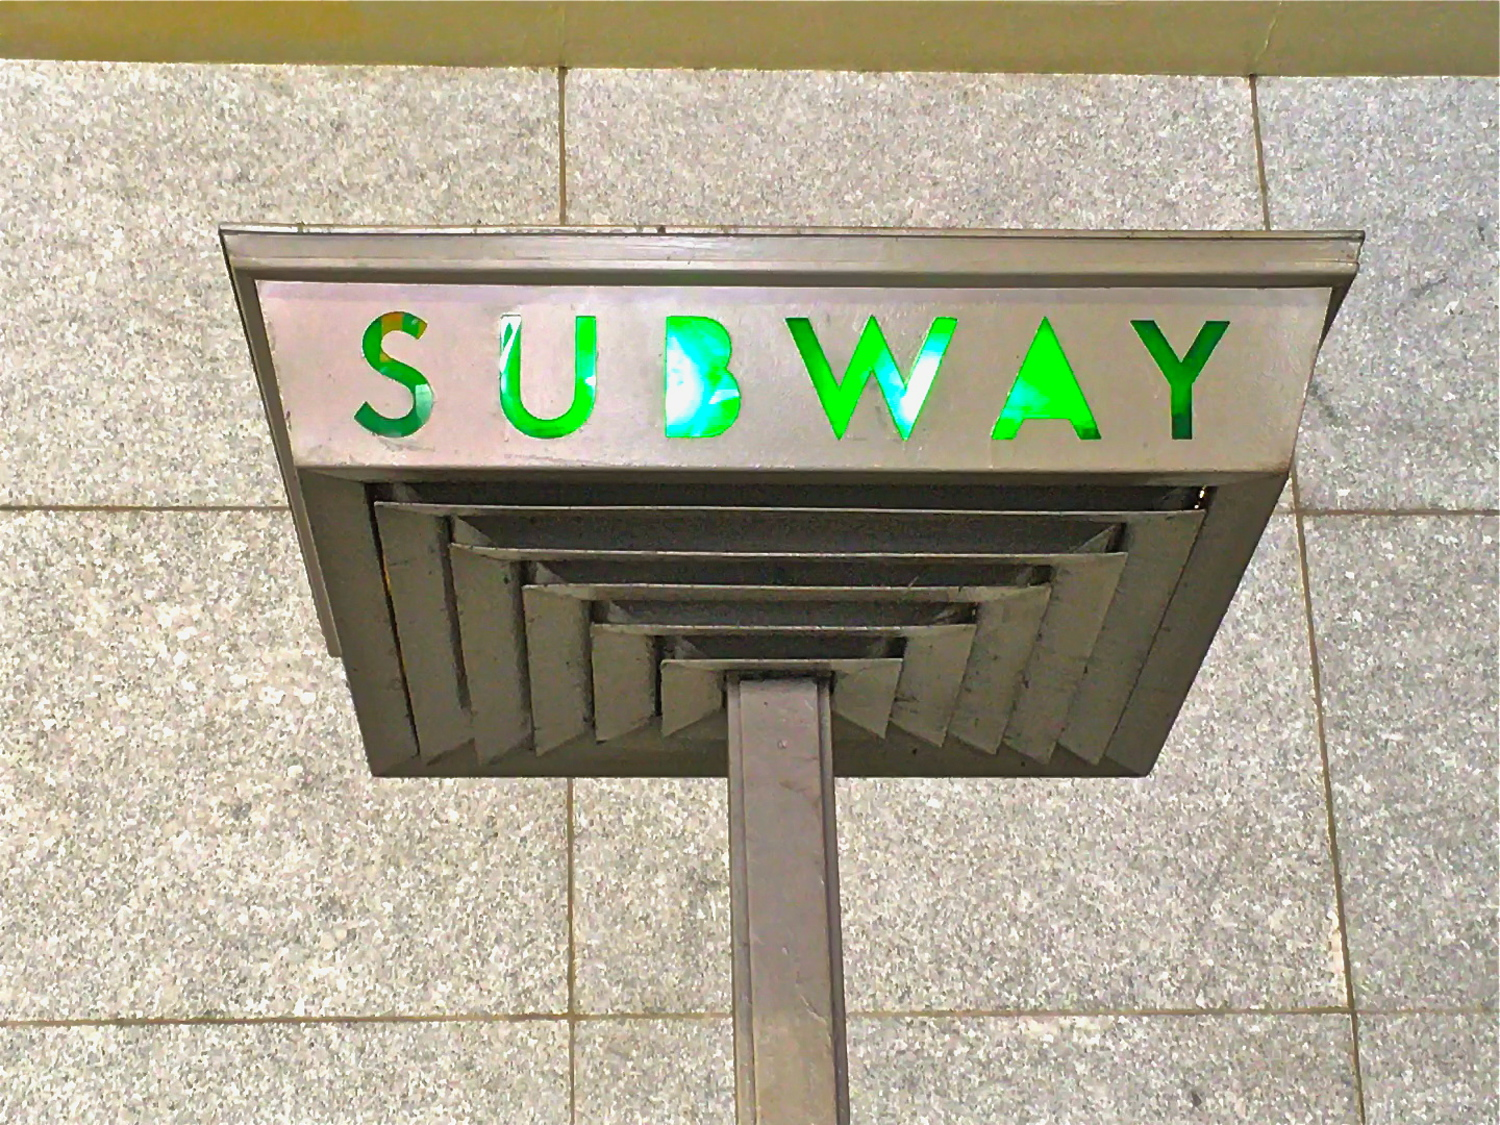 The coolest neon green subway sign in Brooklyn